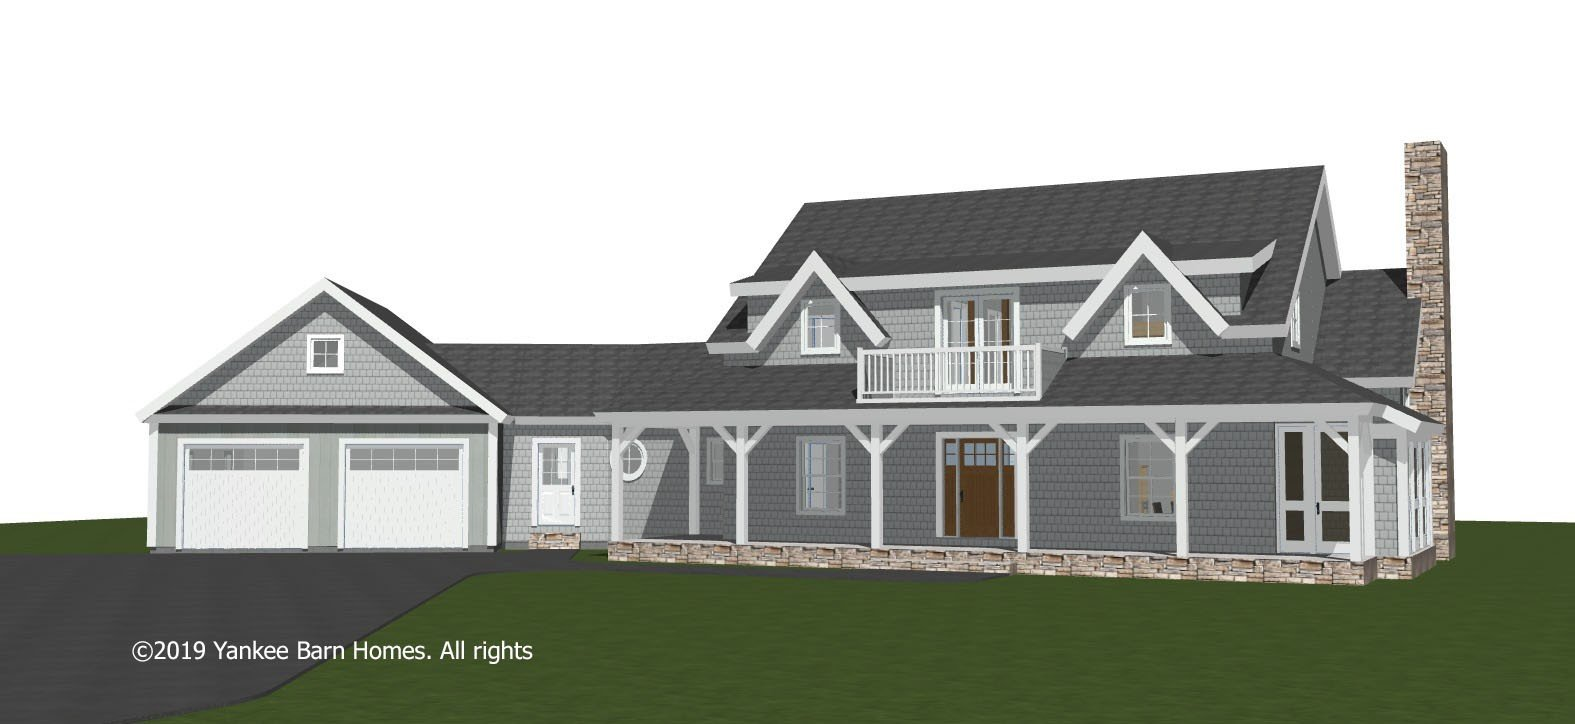 Homepage - Yankee Barn Homes on simple house plans modular, traditional house plans modular, craftsman house plans modular,